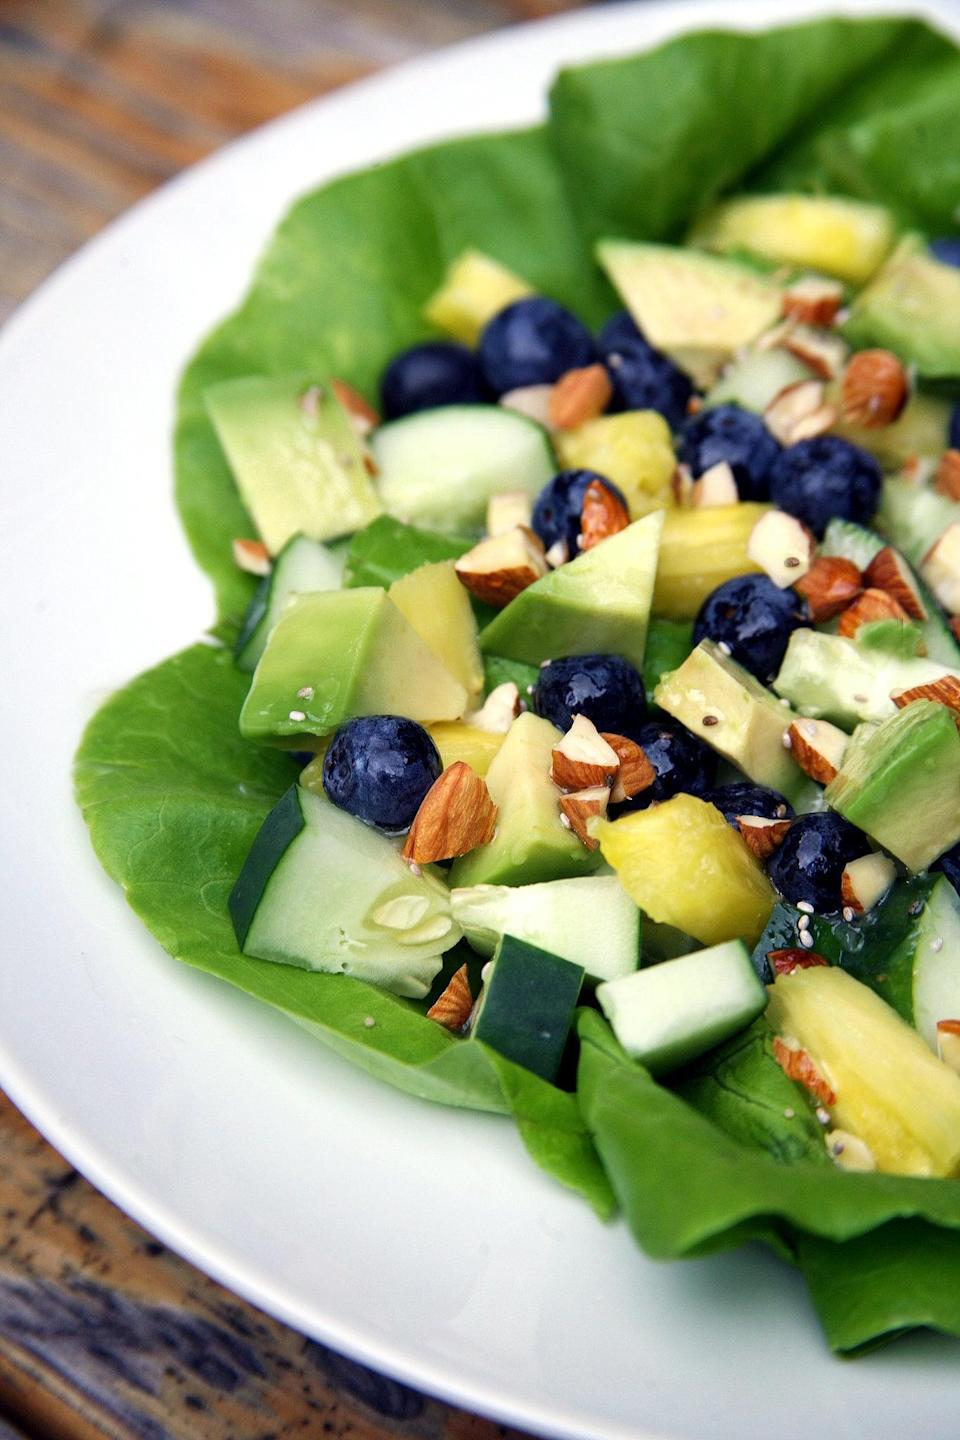 "<p>Top this refreshing salad with your favorite protein, such as grilled chicken, salmon, or tofu for a light, refreshing, and filling meal.</p> <p><strong>Calories:</strong> 340<br> <strong>Protein:</strong> 6.3 grams</p> <p><strong>Get the recipe:</strong> <a href=""https://www.popsugar.com/fitness/Flat-Belly-Salad-35067945"" class=""link rapid-noclick-resp"" rel=""nofollow noopener"" target=""_blank"" data-ylk=""slk:sweet and tropical salad"">sweet and tropical salad</a></p>"